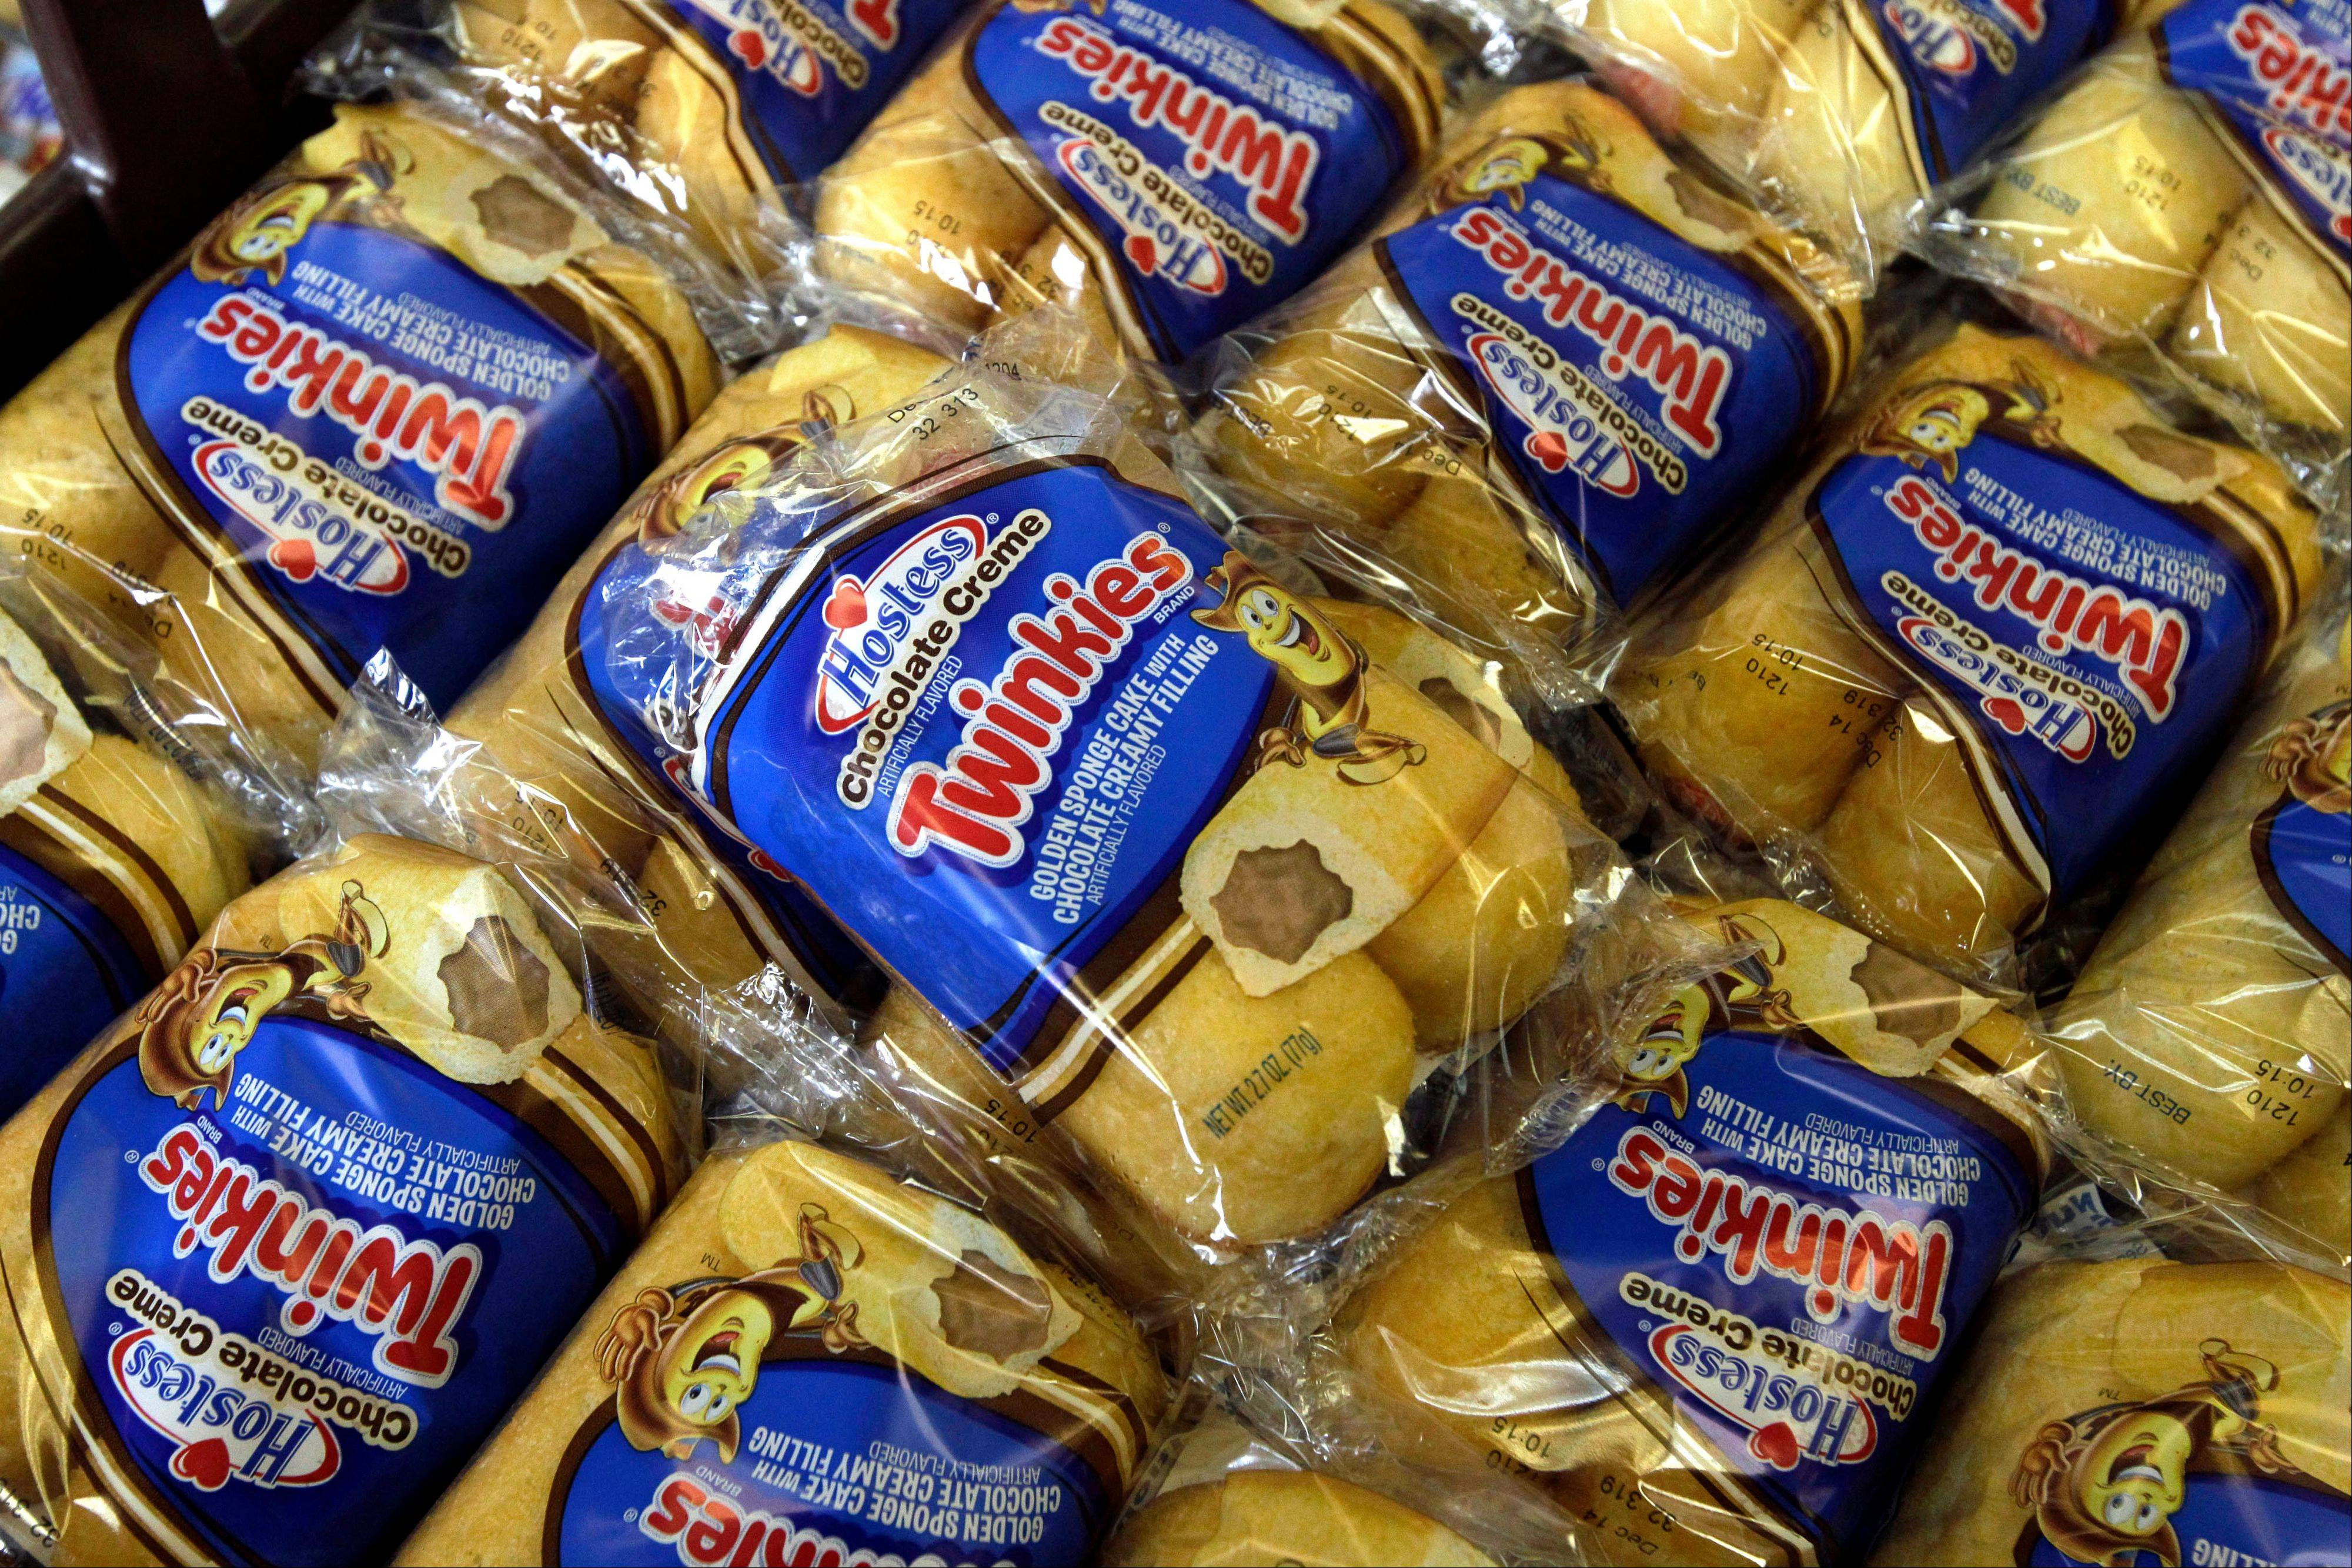 Hostess Brands said Monday that it will open bakeries in Indianapolis and Schiller Park, Ill.